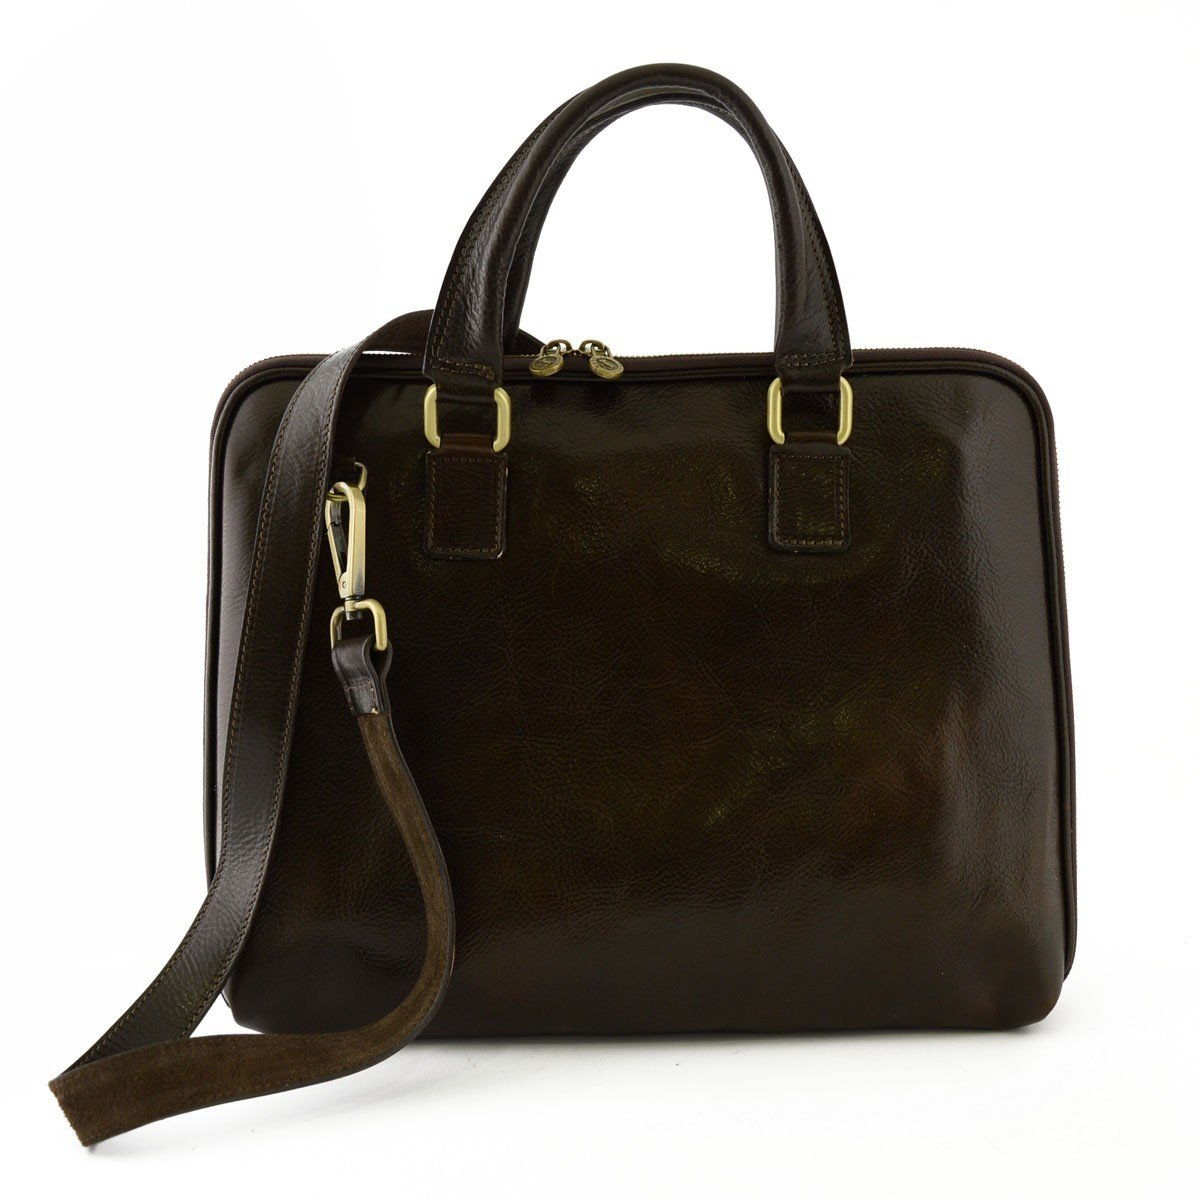 Made In Italy Genuine Leather Briefcase With Zip Closure And Side Bellows Color Dark Brown - Business Bag B01BOGNONI